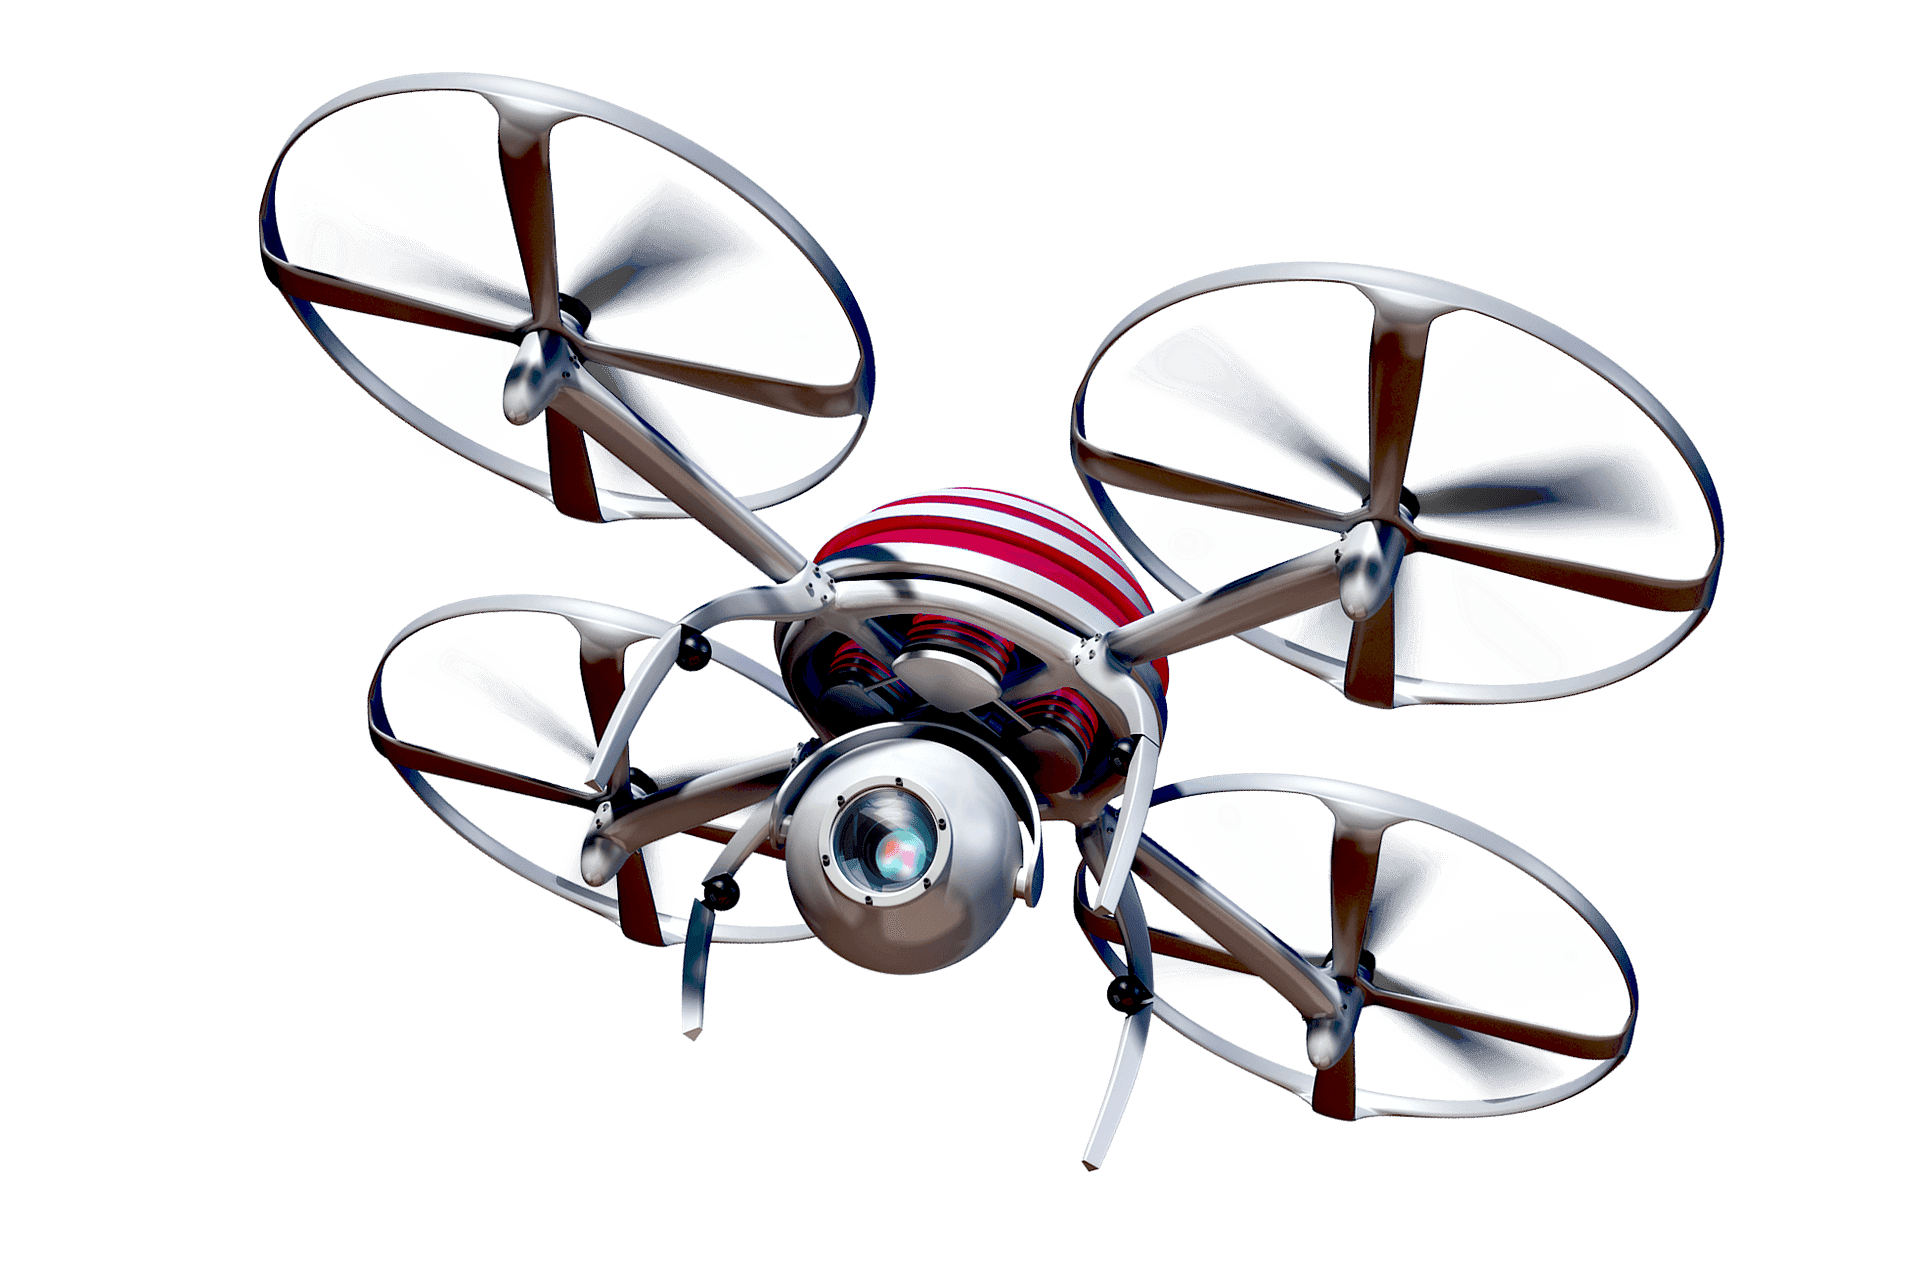 content/zh-cn/images/repository/isc/2020/a-spy-drone-with-large-camera-lens.png